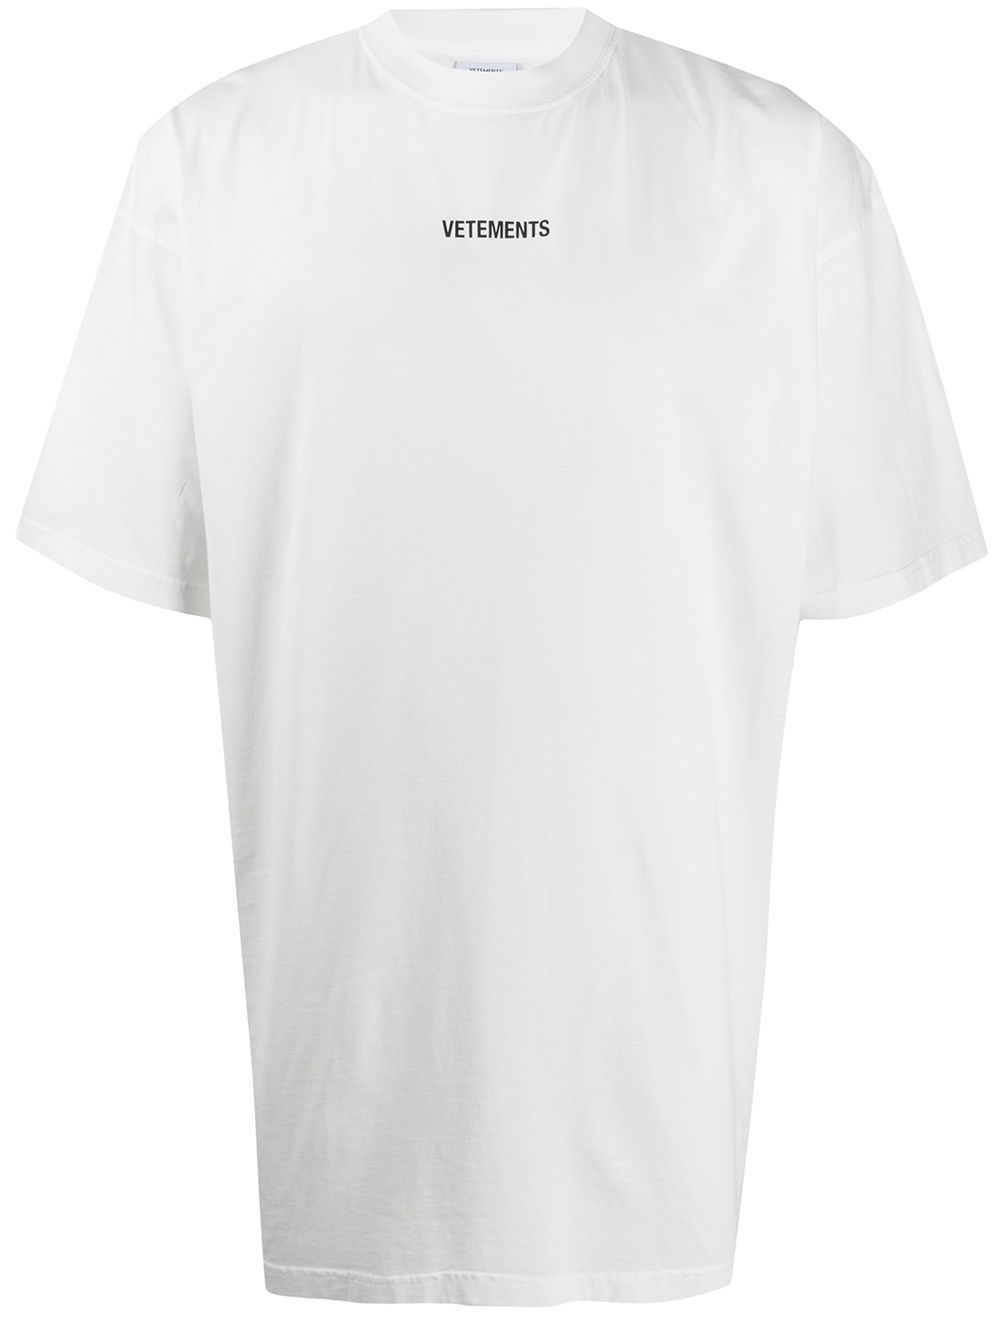 VETEMENTS Logo Patch T-Shirt White - Maison De Fashion